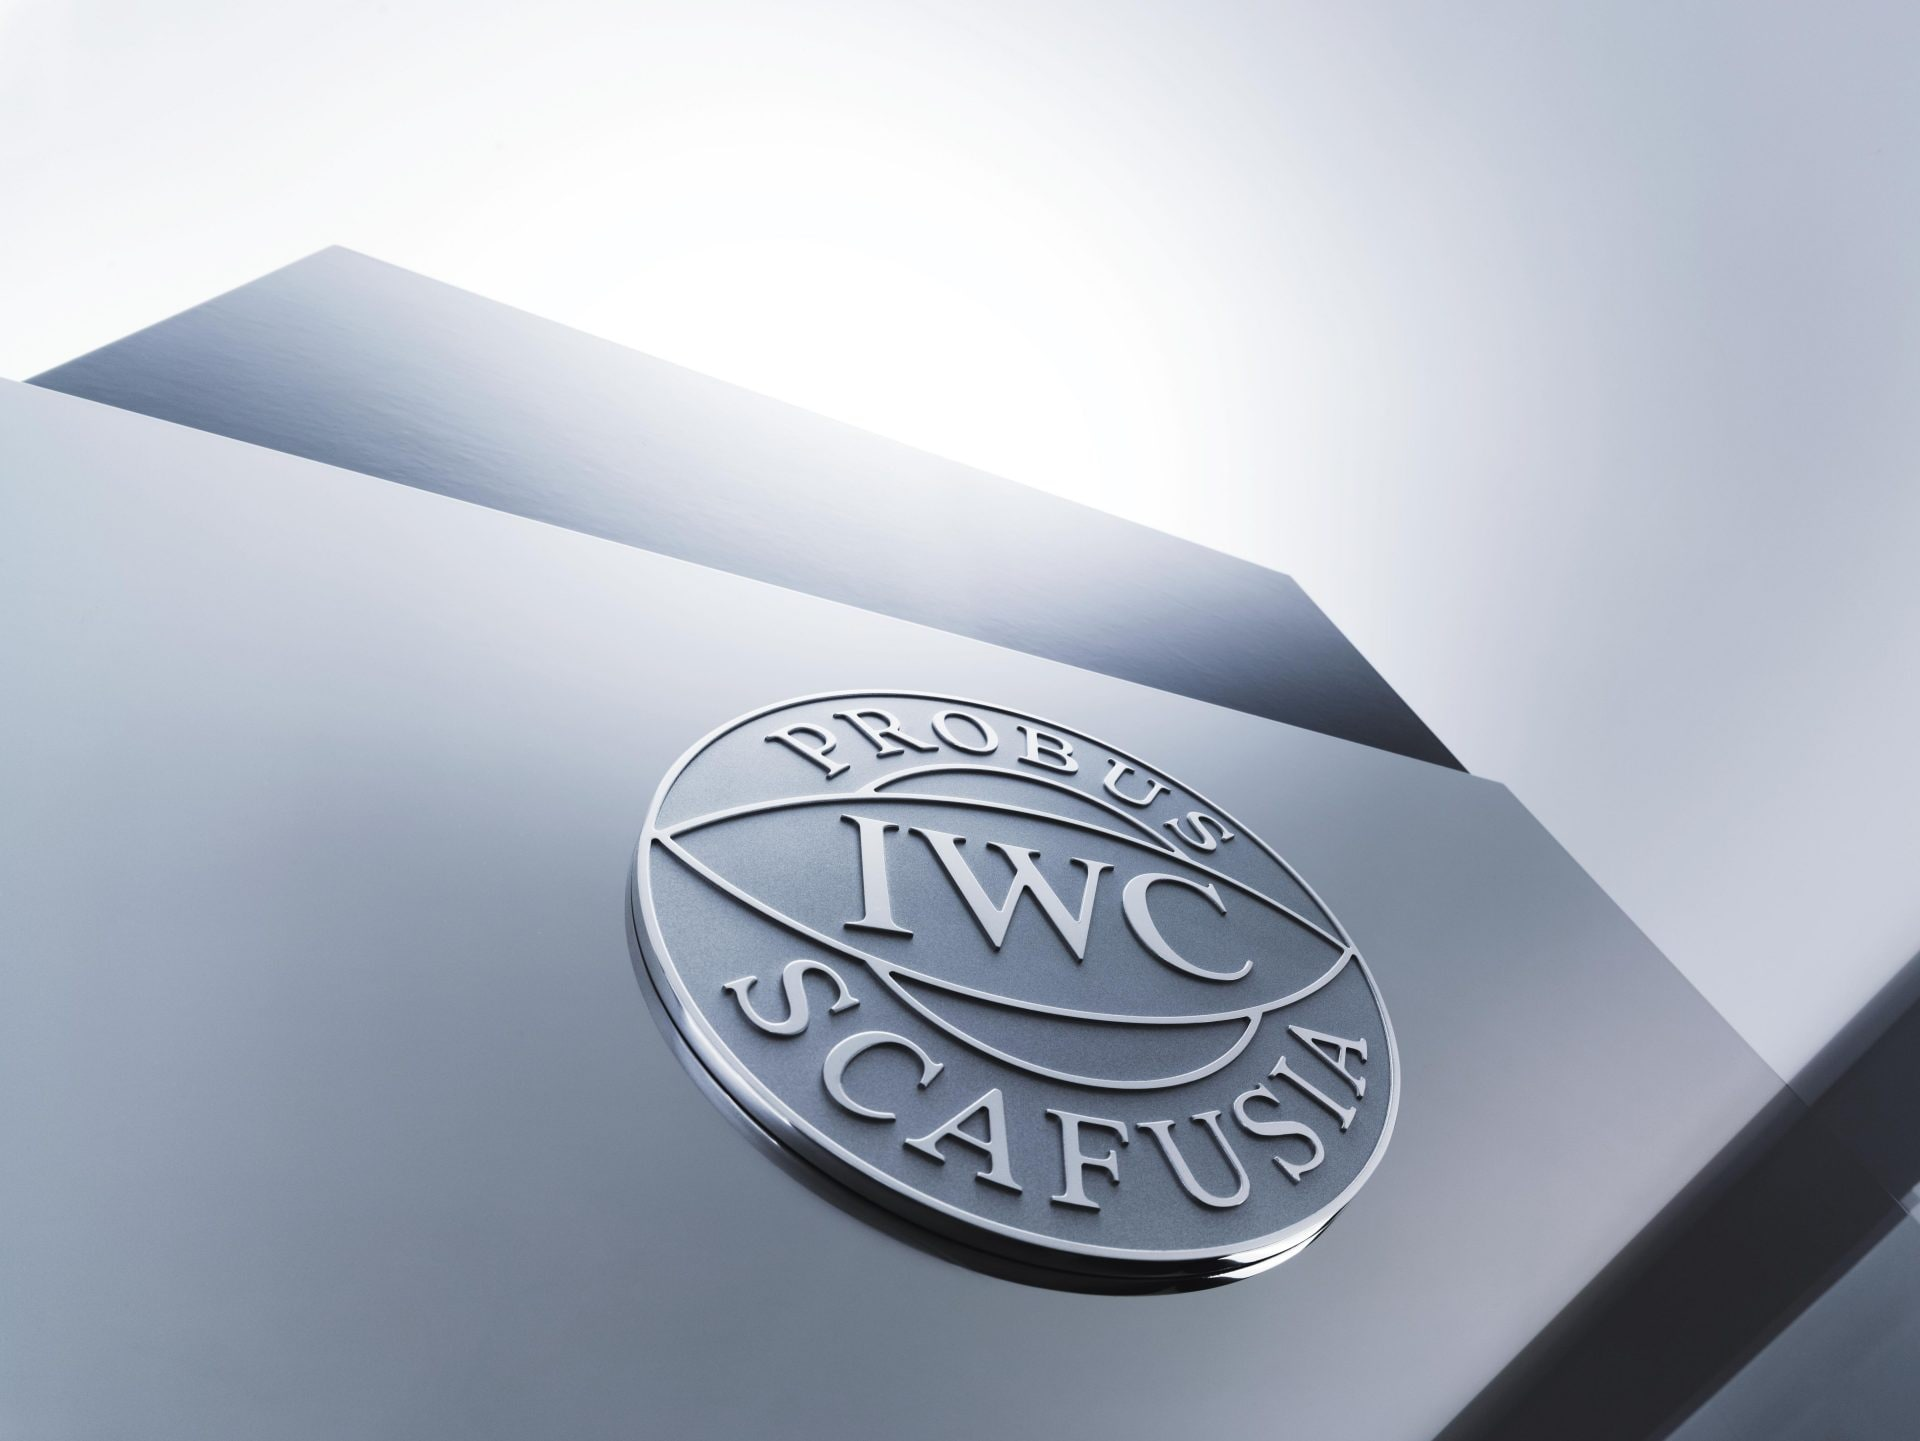 About IWC